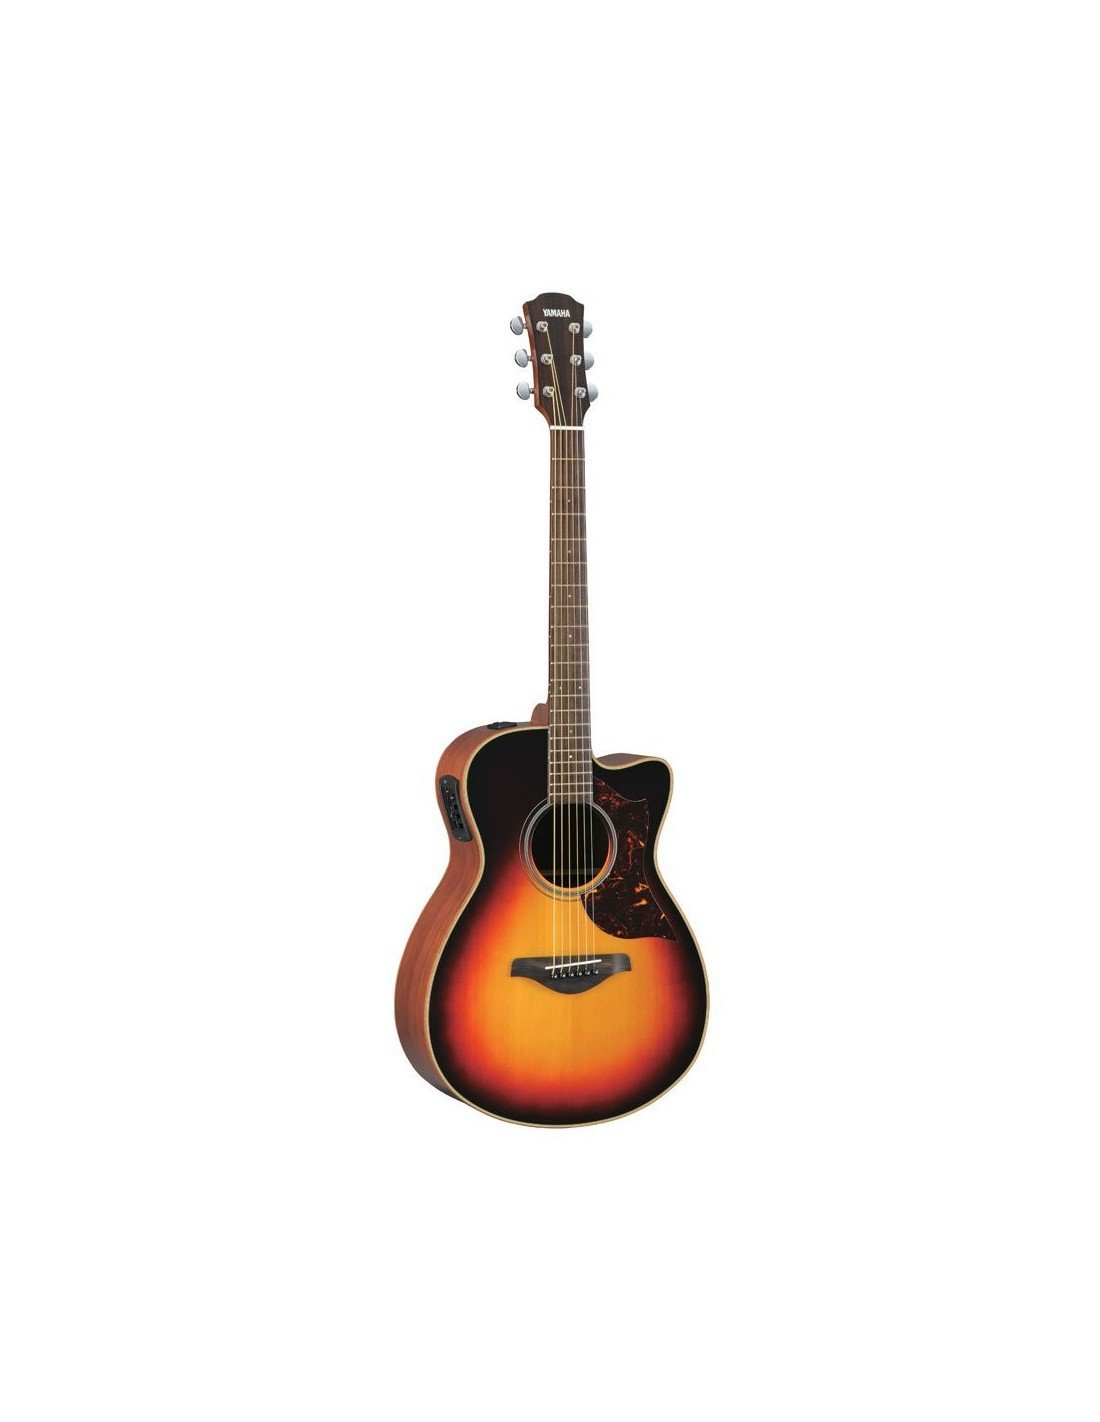 Yamaha A Series Small Body Cutaway Acoustic-Electric Guitar - Solid Sitka Spruce Top, Mahogany B/S, SRT System72 Piezo/Preamp, Tobacco Brown Sunburst